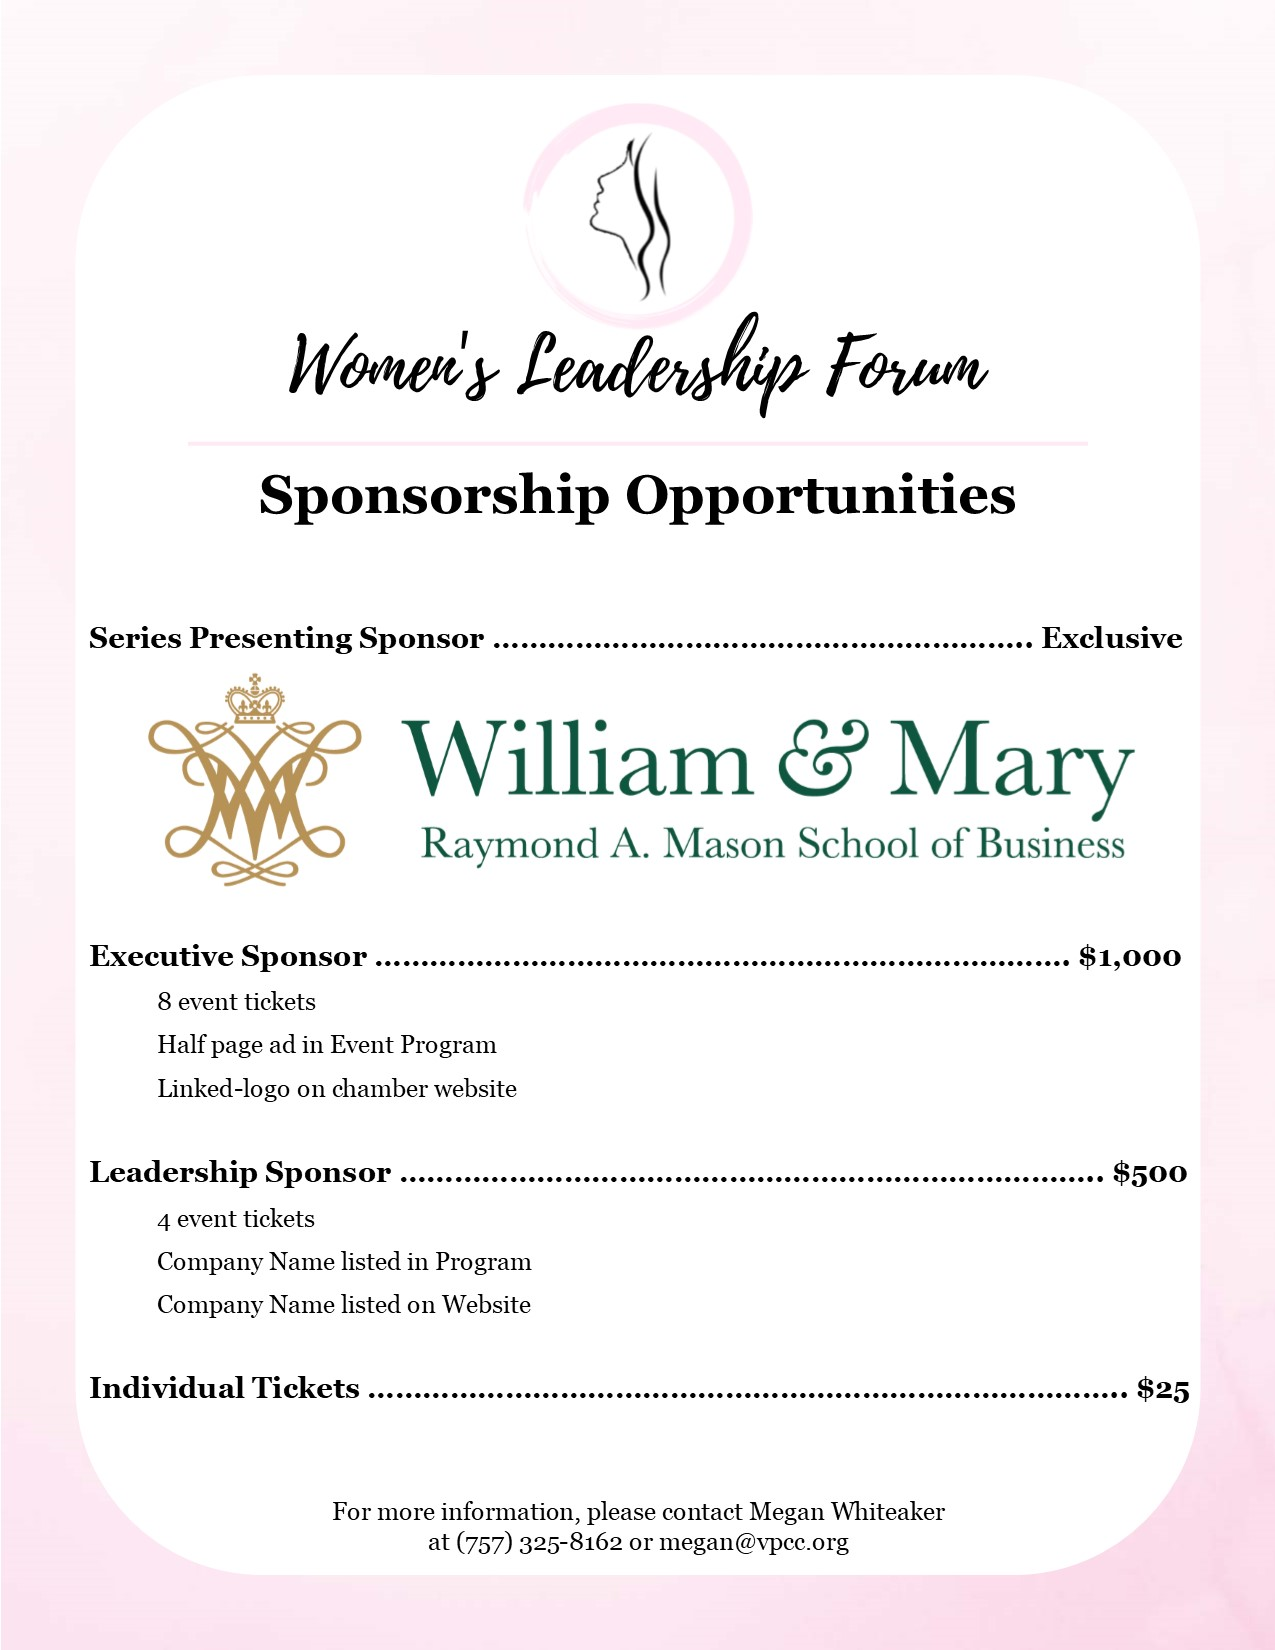 Women's-Leadership-Forum-(SPONSORSHIPS).jpg